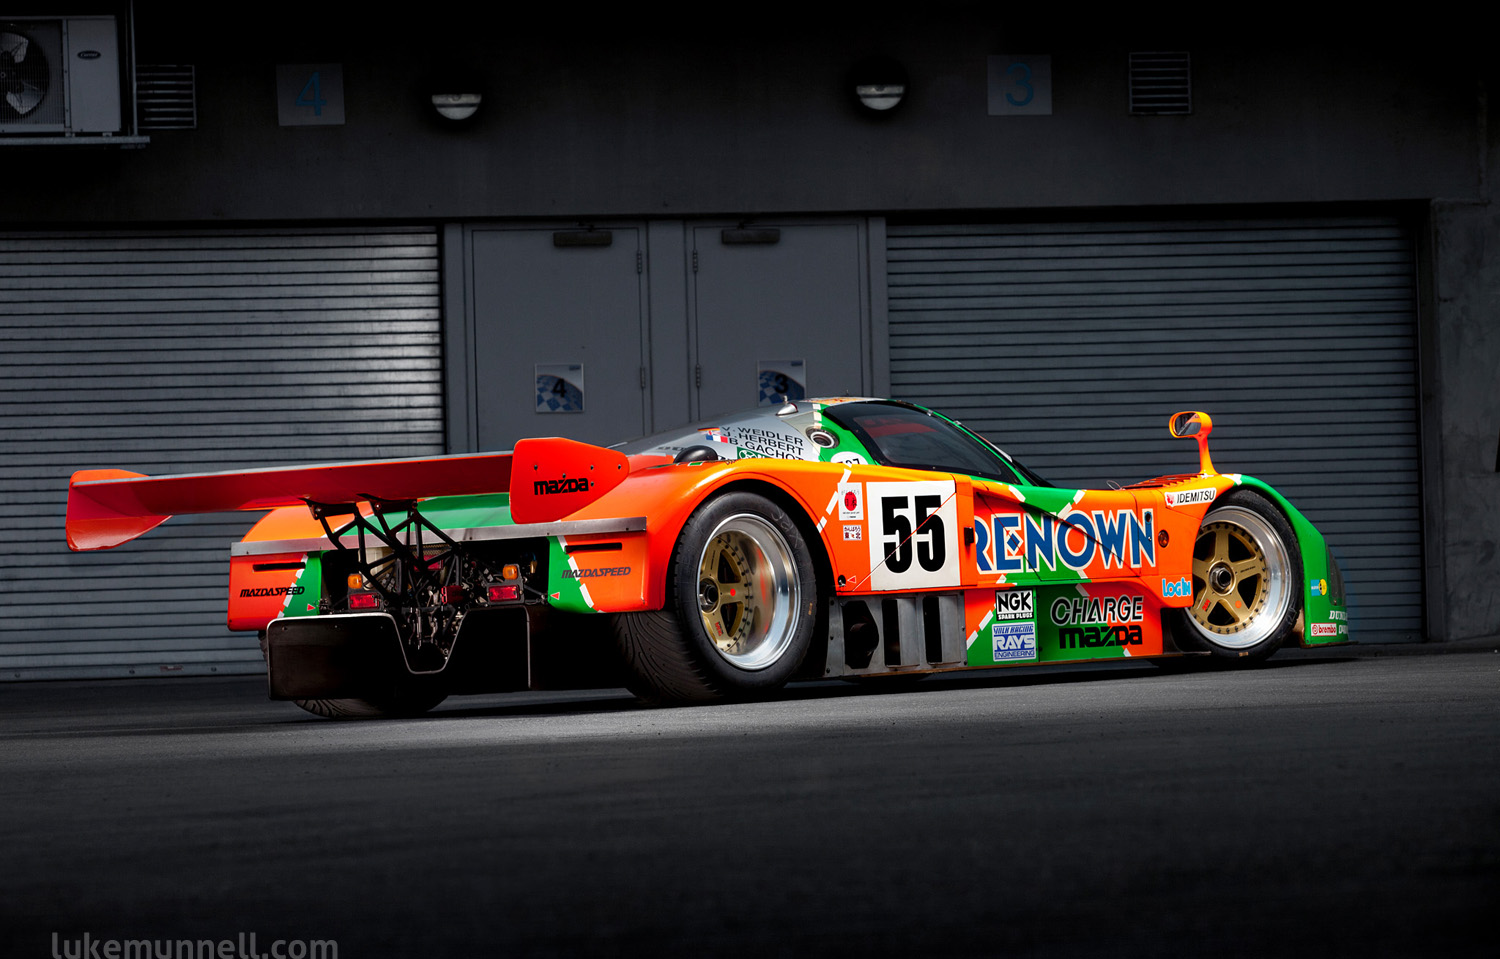 55 mazda 787b rear mazda raceway laguna seca by lukemunnell on deviantart. Black Bedroom Furniture Sets. Home Design Ideas